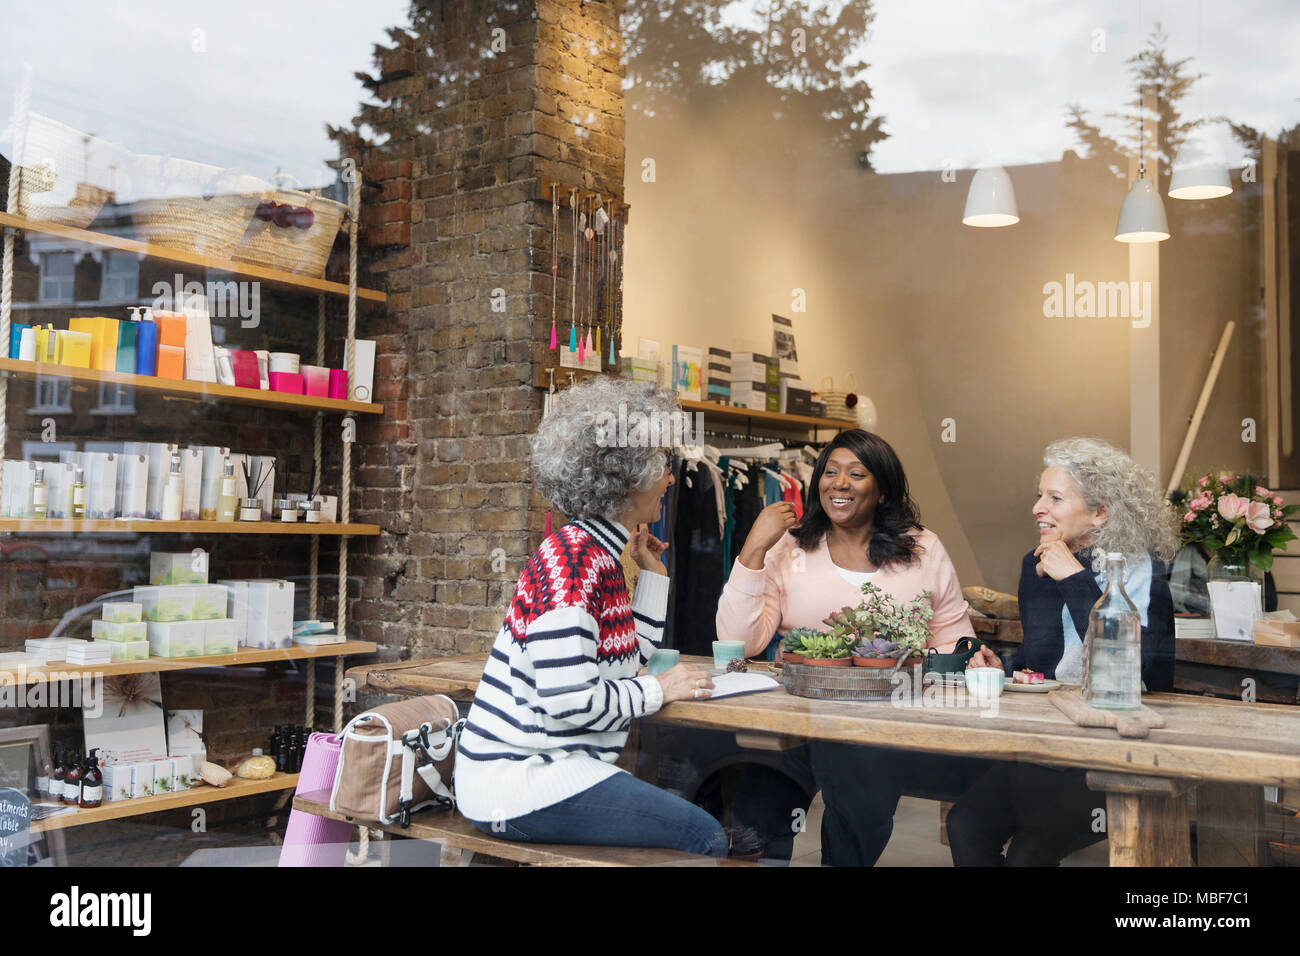 Women friends drinking tea at cafe shop Stock Photo